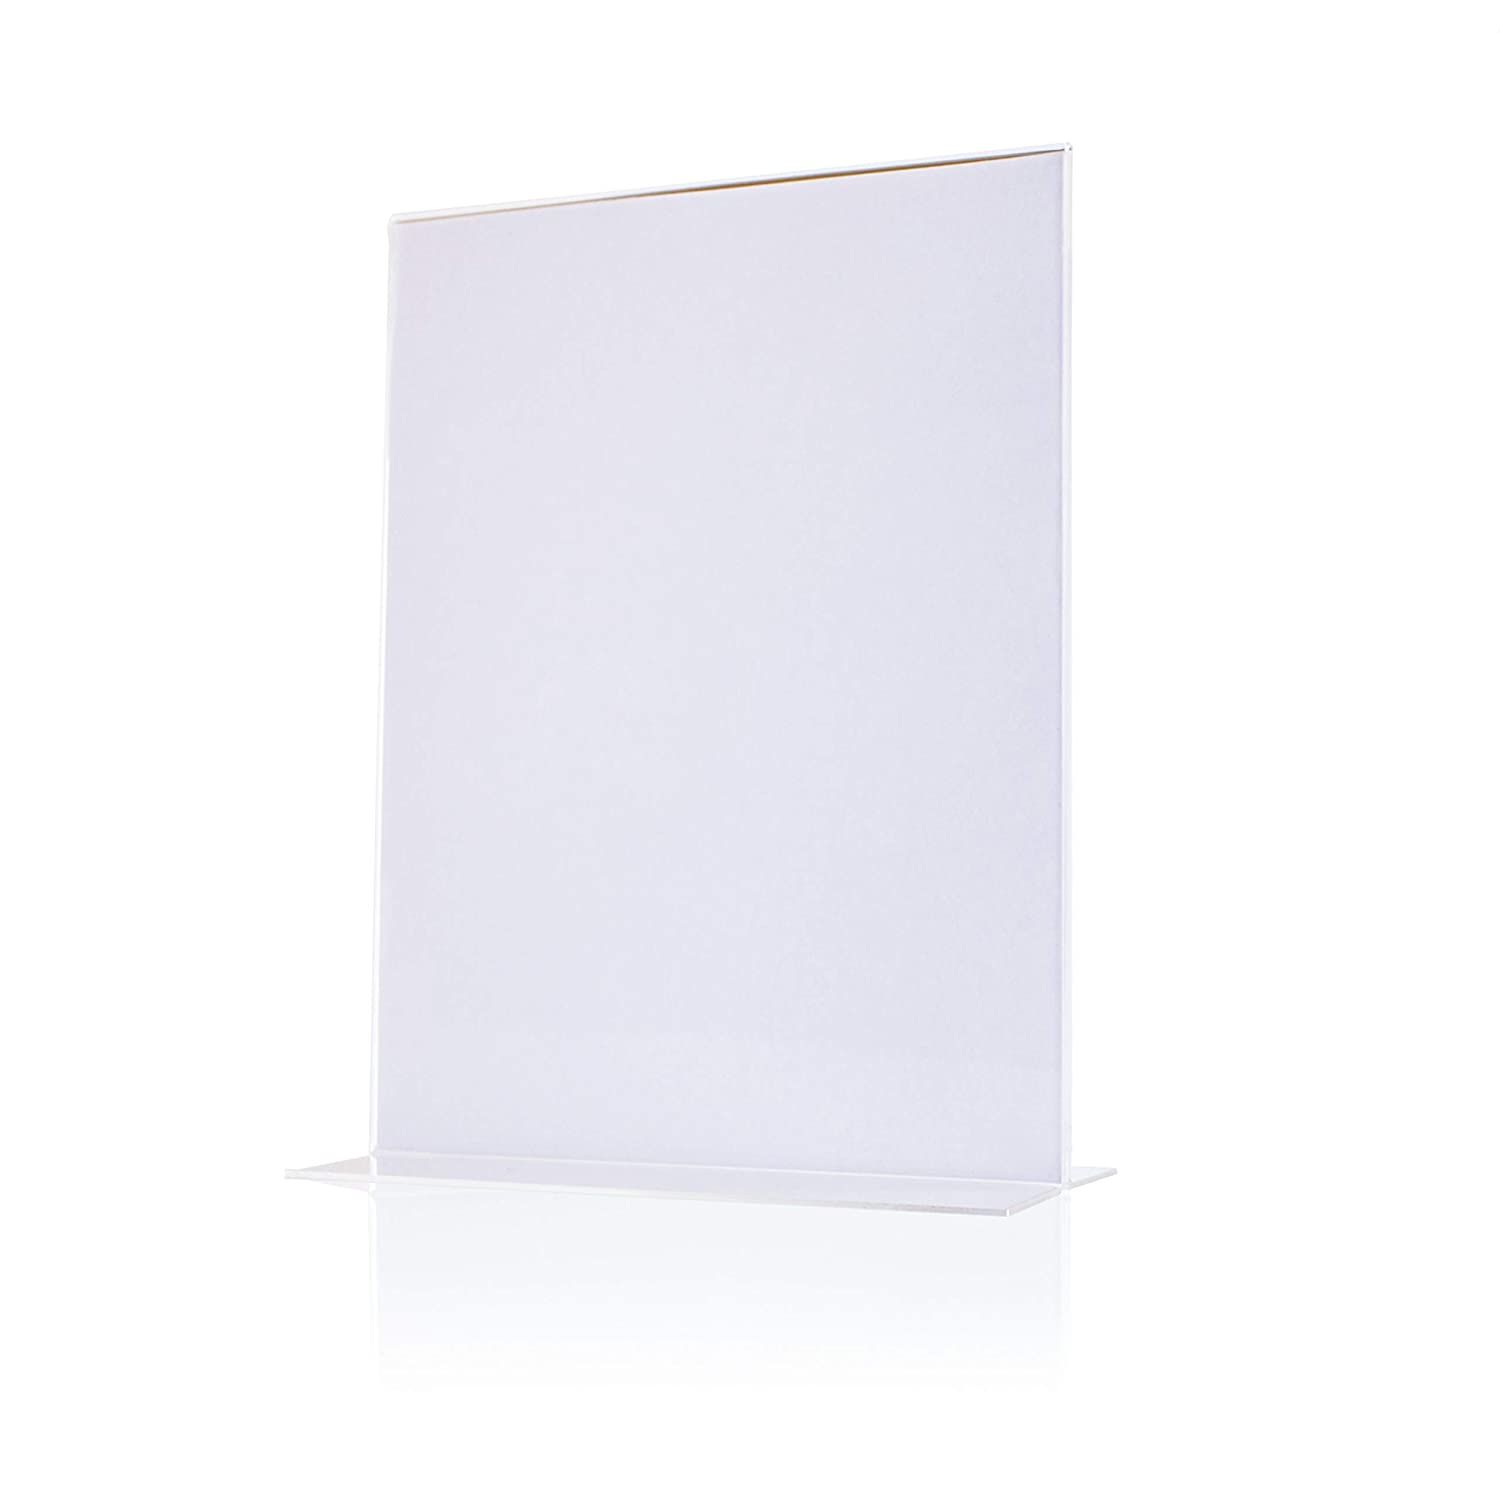 Menu 8.5 x 11 Set of 6 Photo T Shaped Double Sided Marketing Display Premium Quality Acrylic Sign Holder Durable